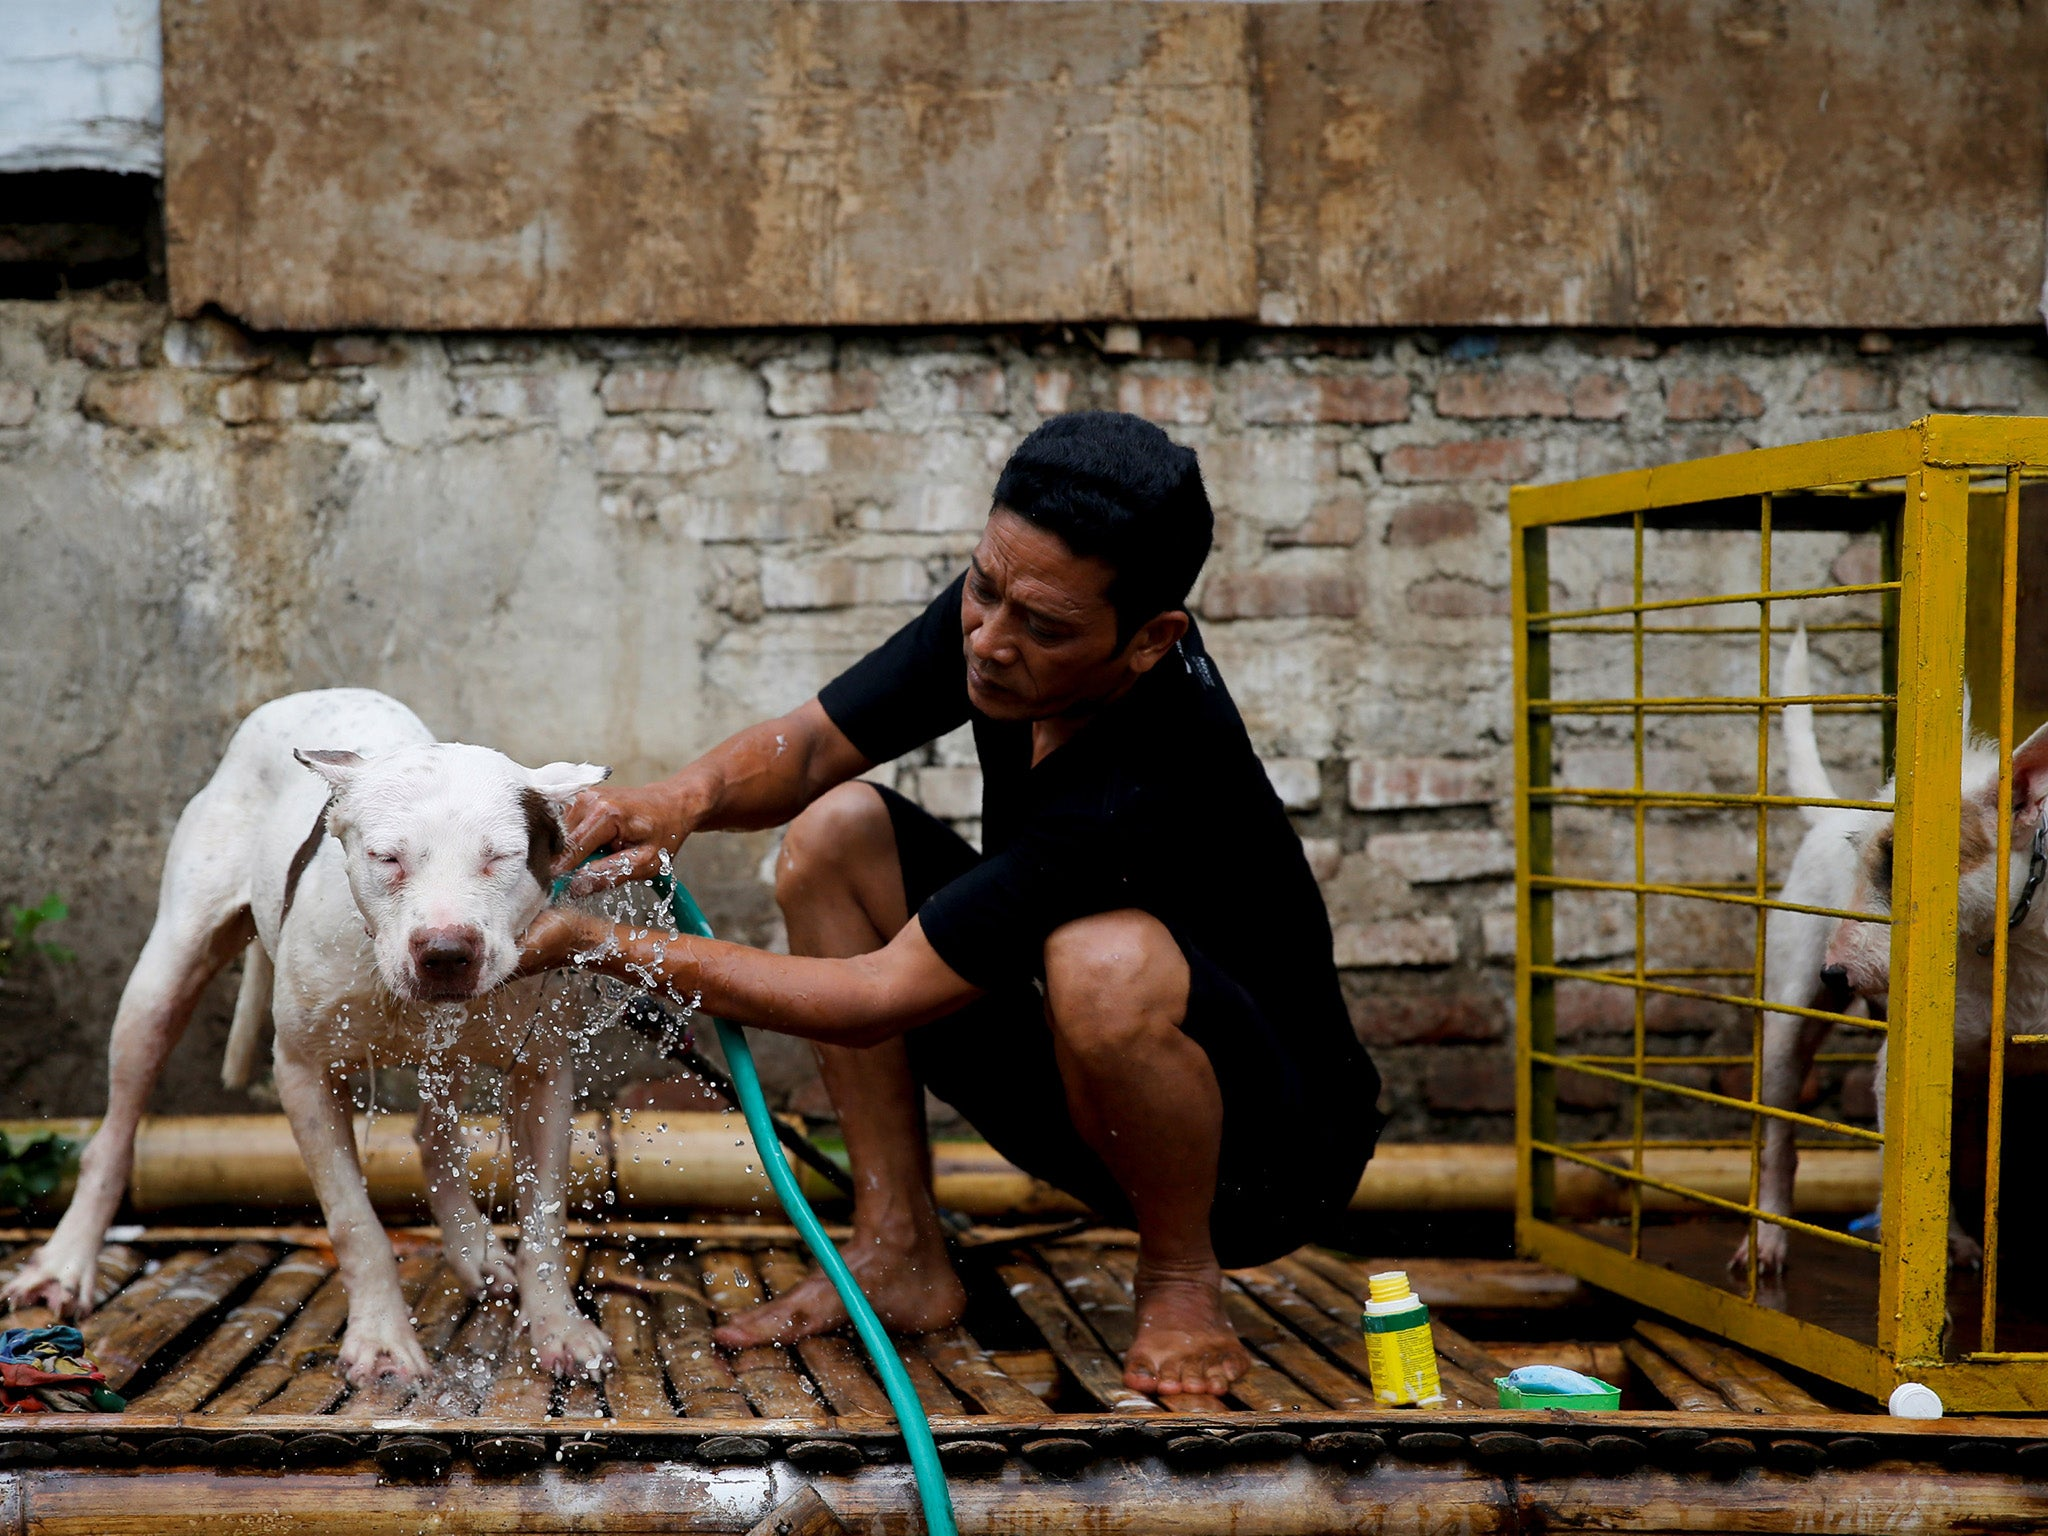 Indonesian villages pit wild boars against dogs | The